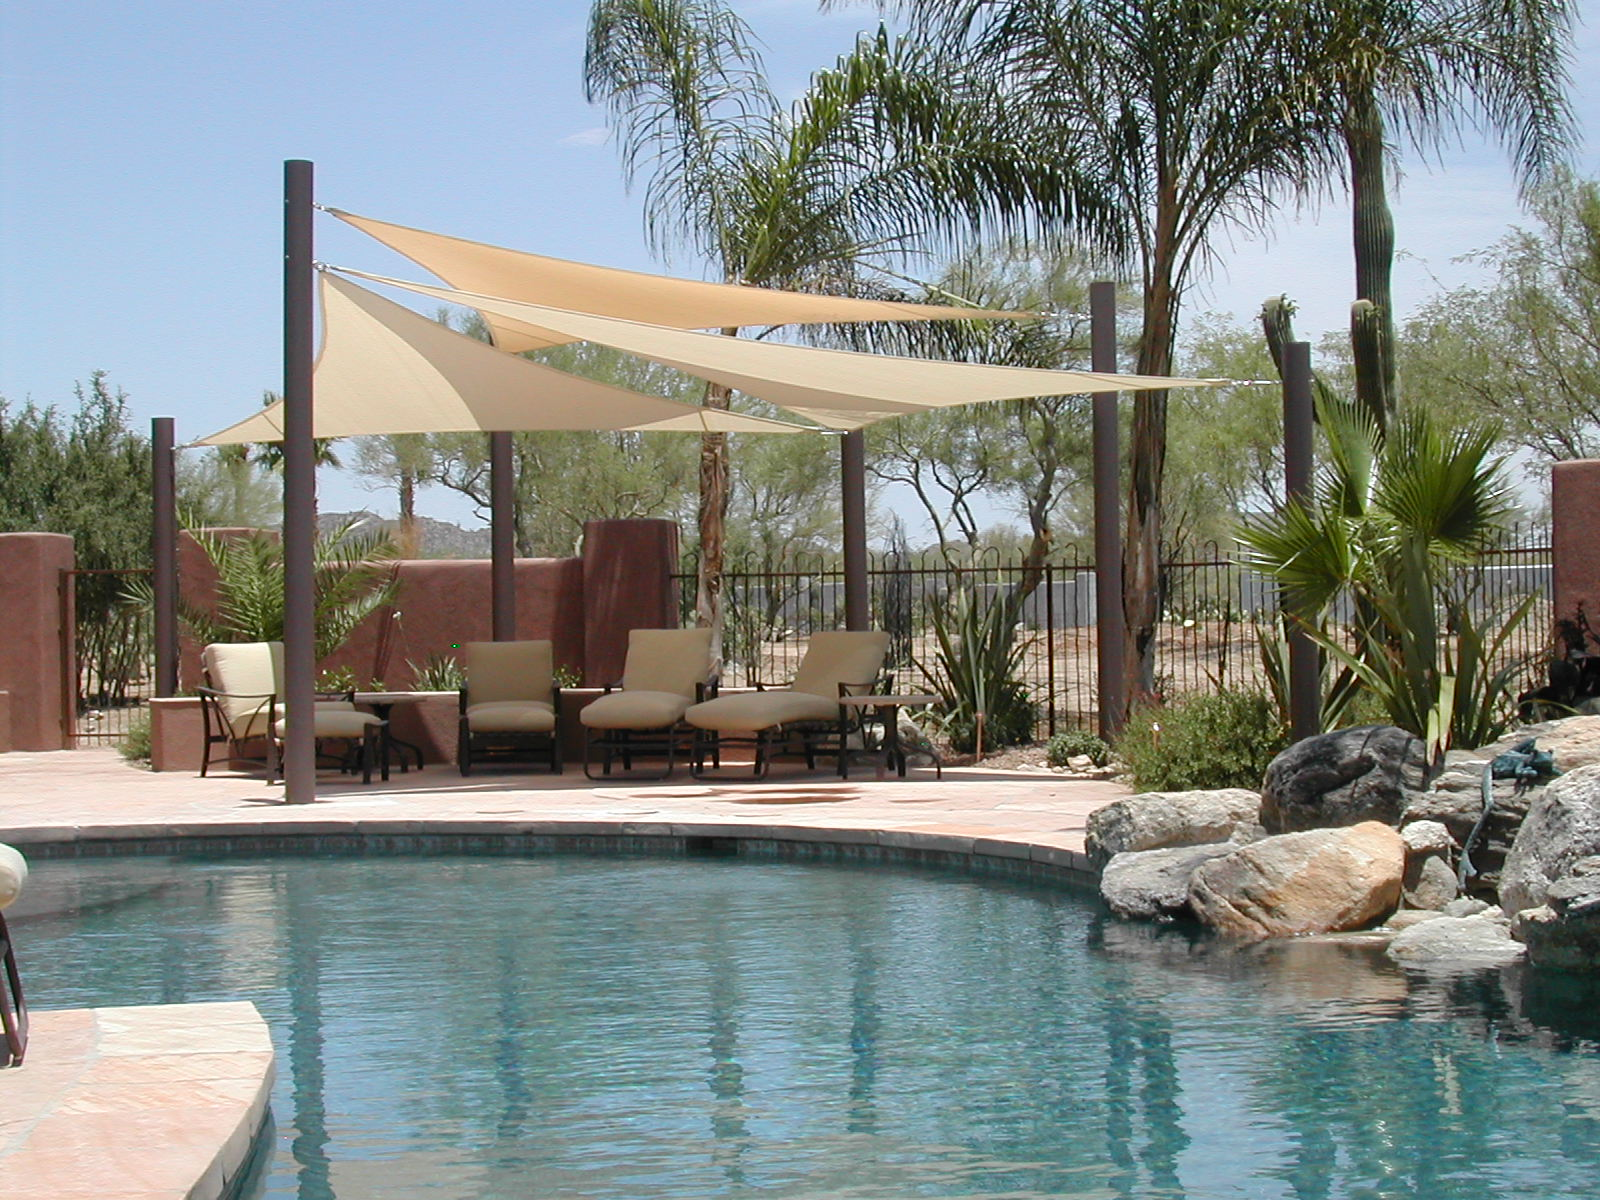 air and sun tucson awning company shade sails retractable awnings